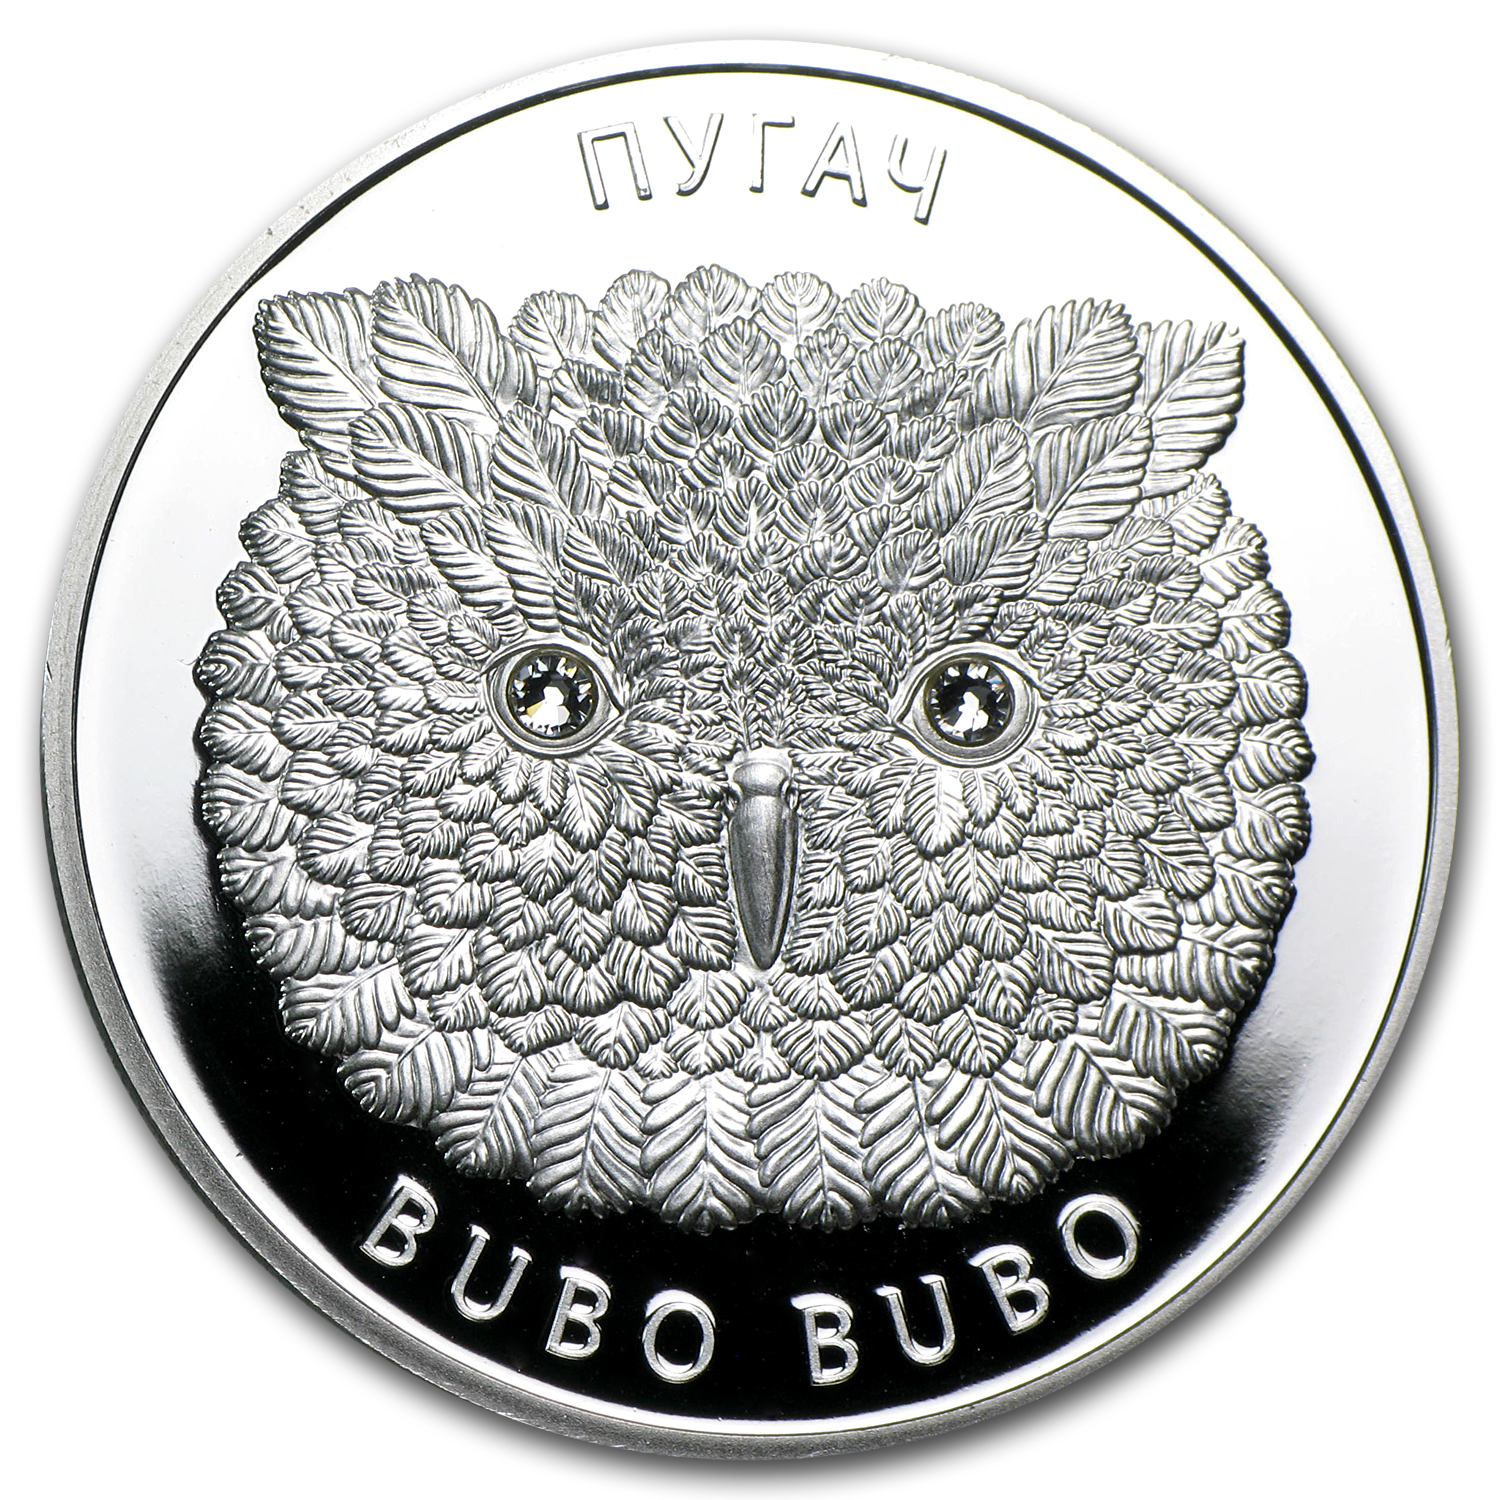 2010 Belarus Proof Silver Eagle Owl Bubo Bubo (No Coa)